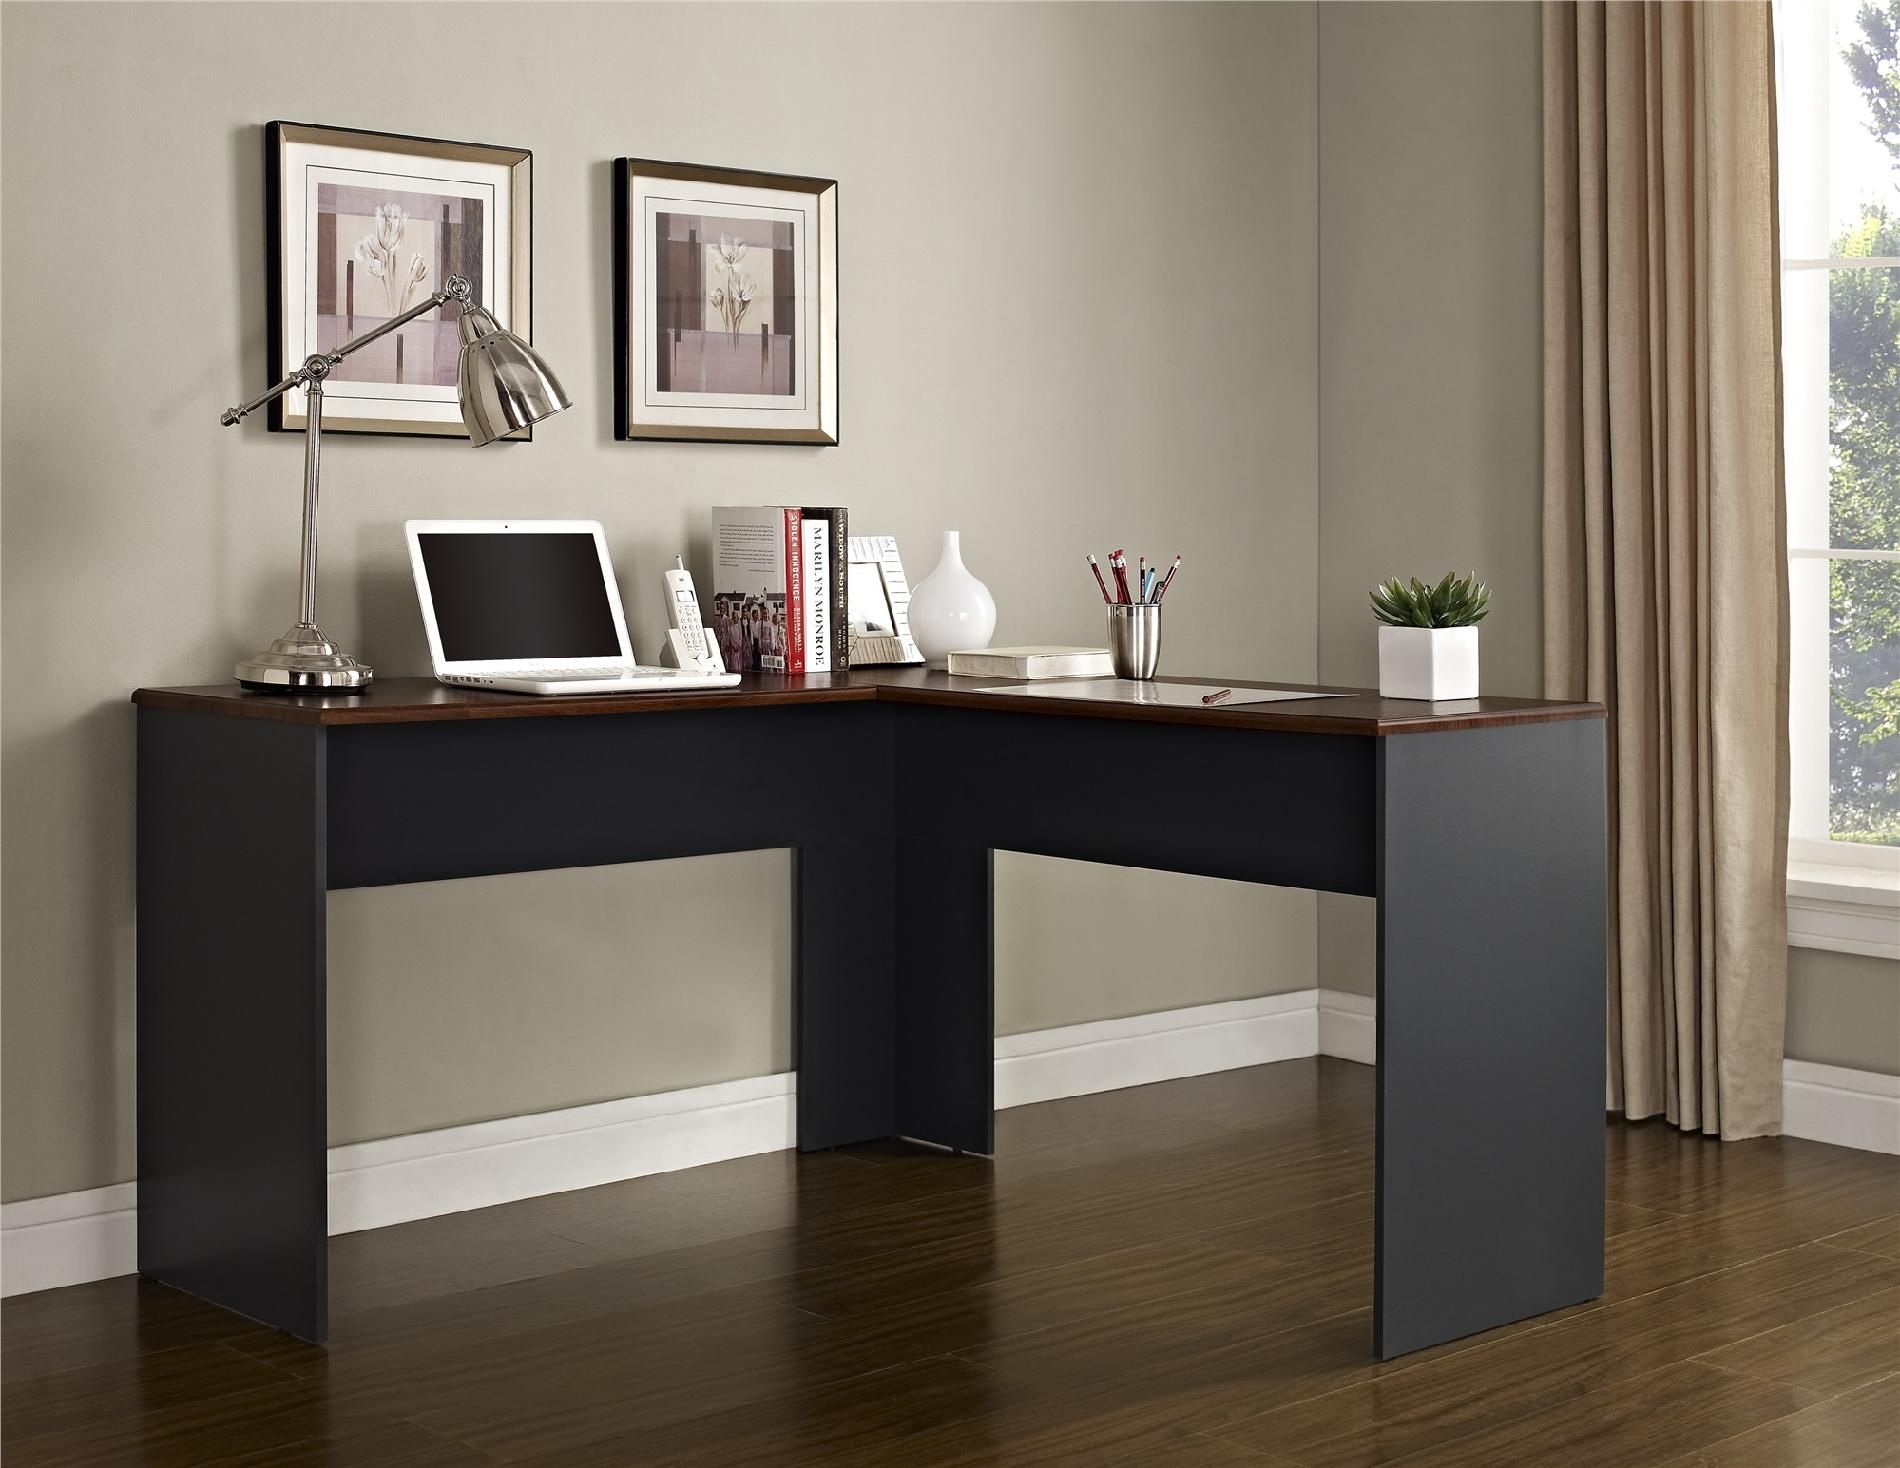 Dorel home furnishings the works cherry and slate gray l shaped desk brown